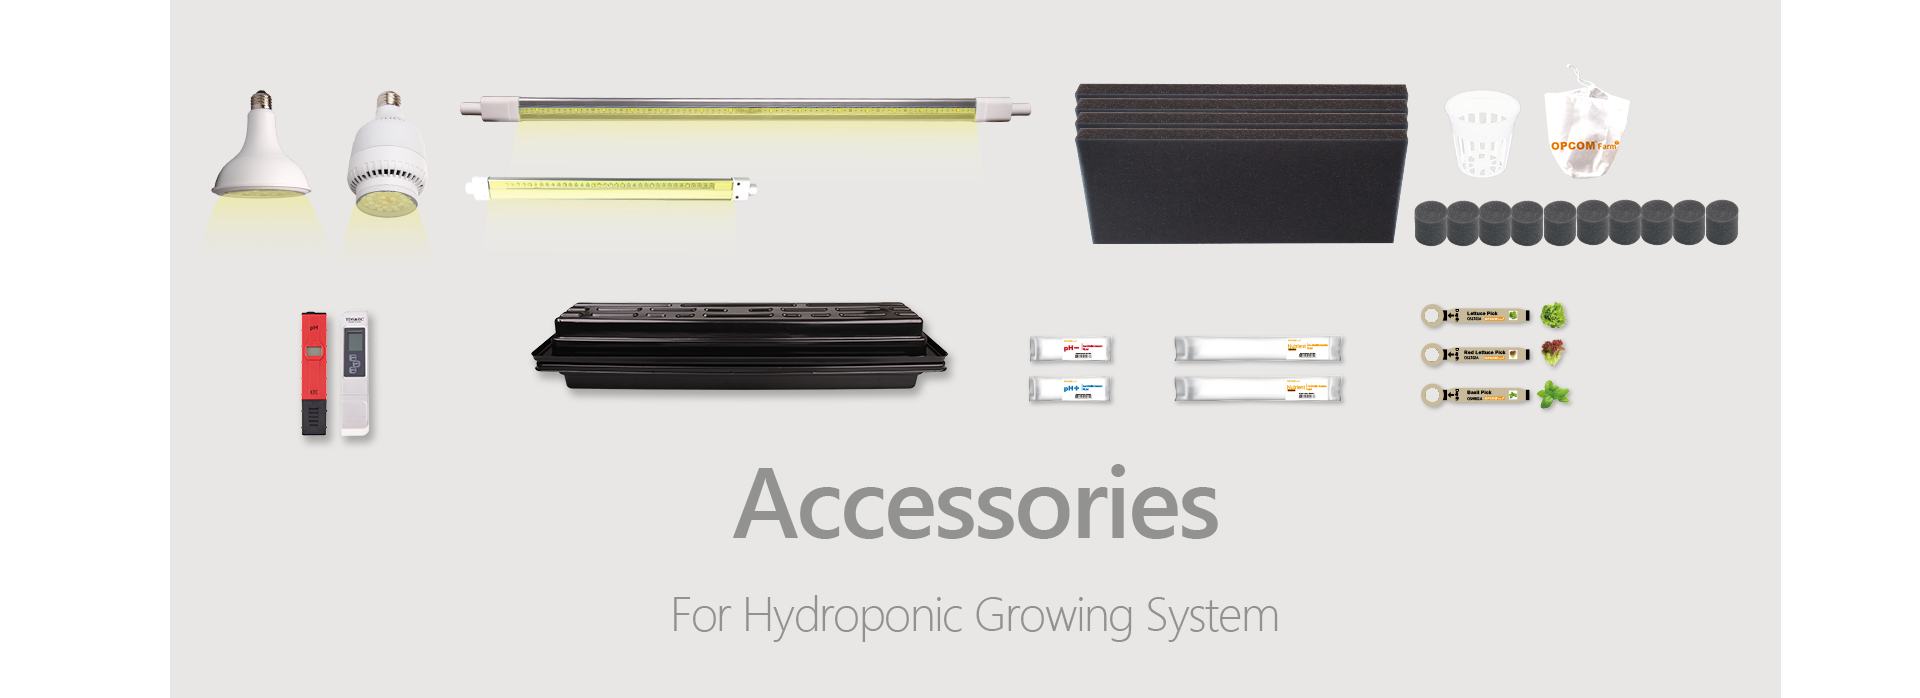 Accessories-Hydroponics,hydroponic grow system,For Hydroponic Growing System